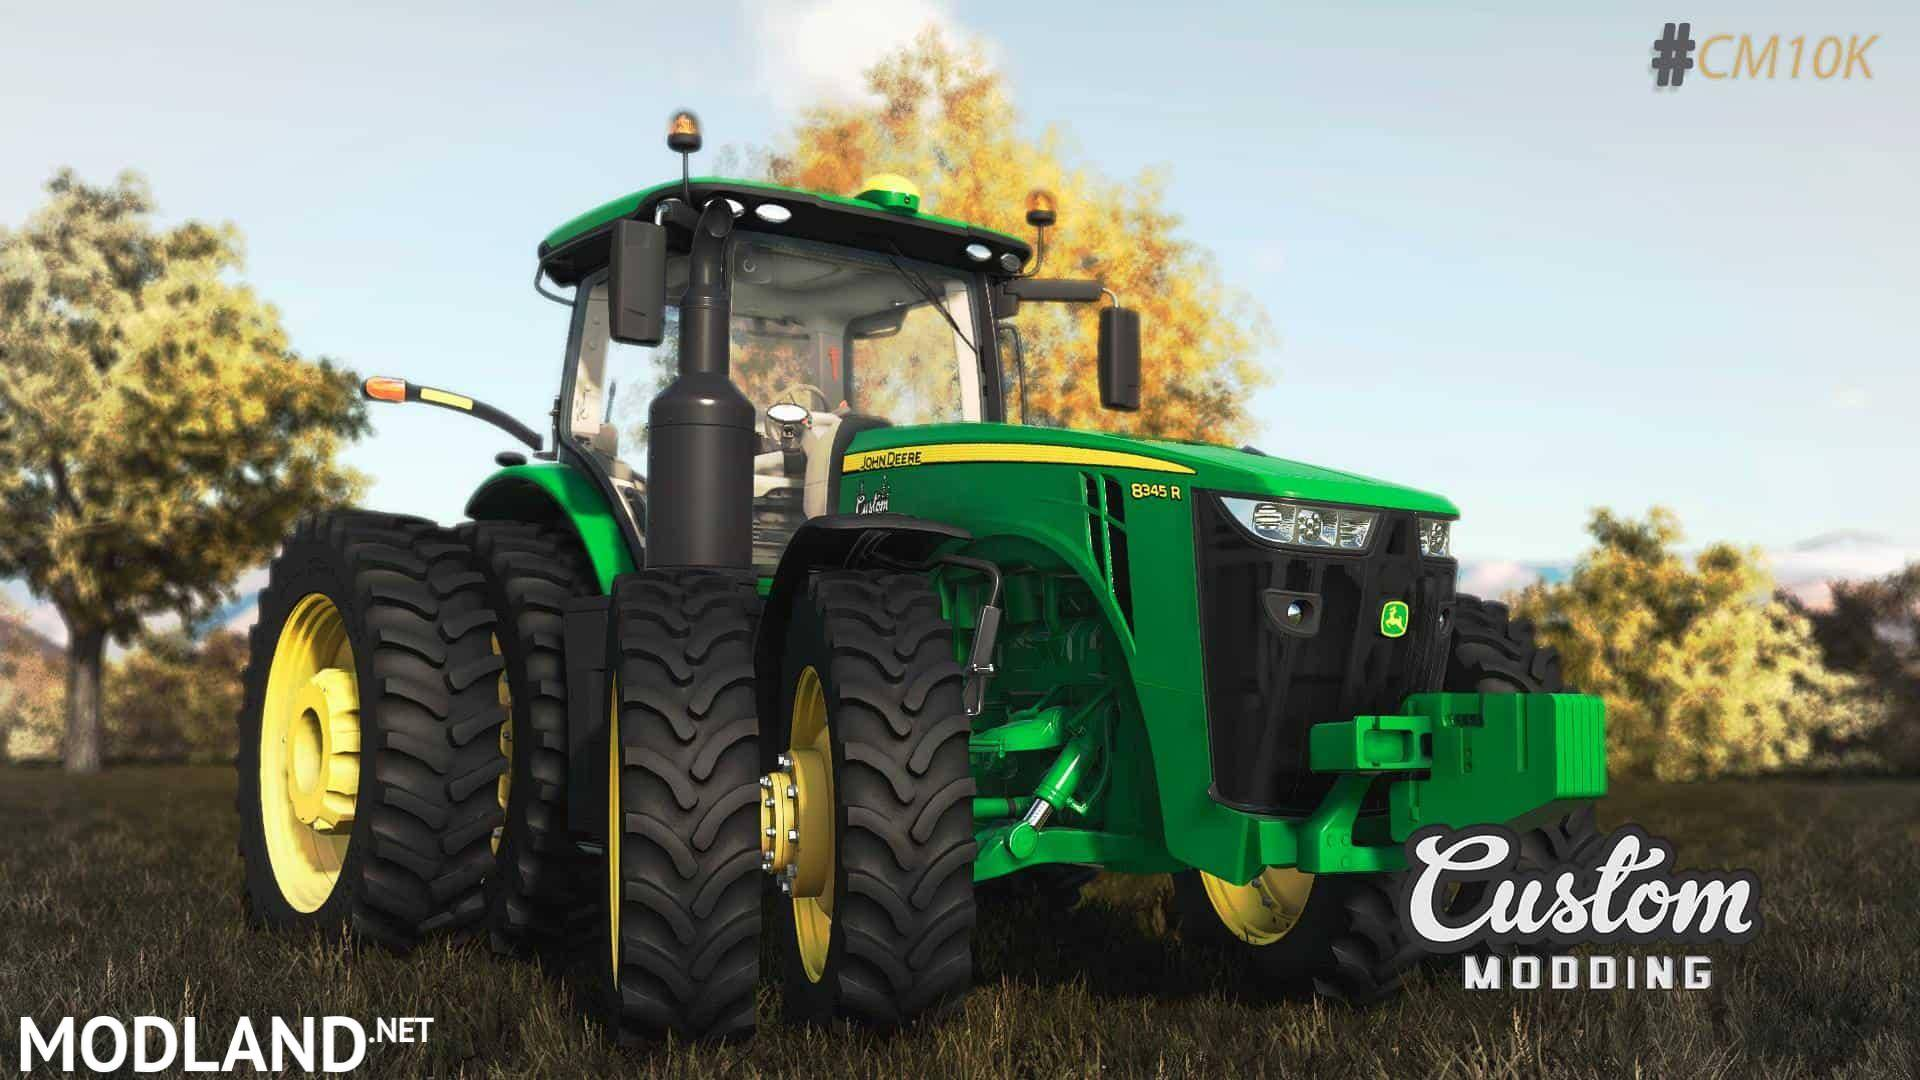 Mccormickih besides  as well Post likewise Cimg Guqt together with Maxresdefault. on john deere 111